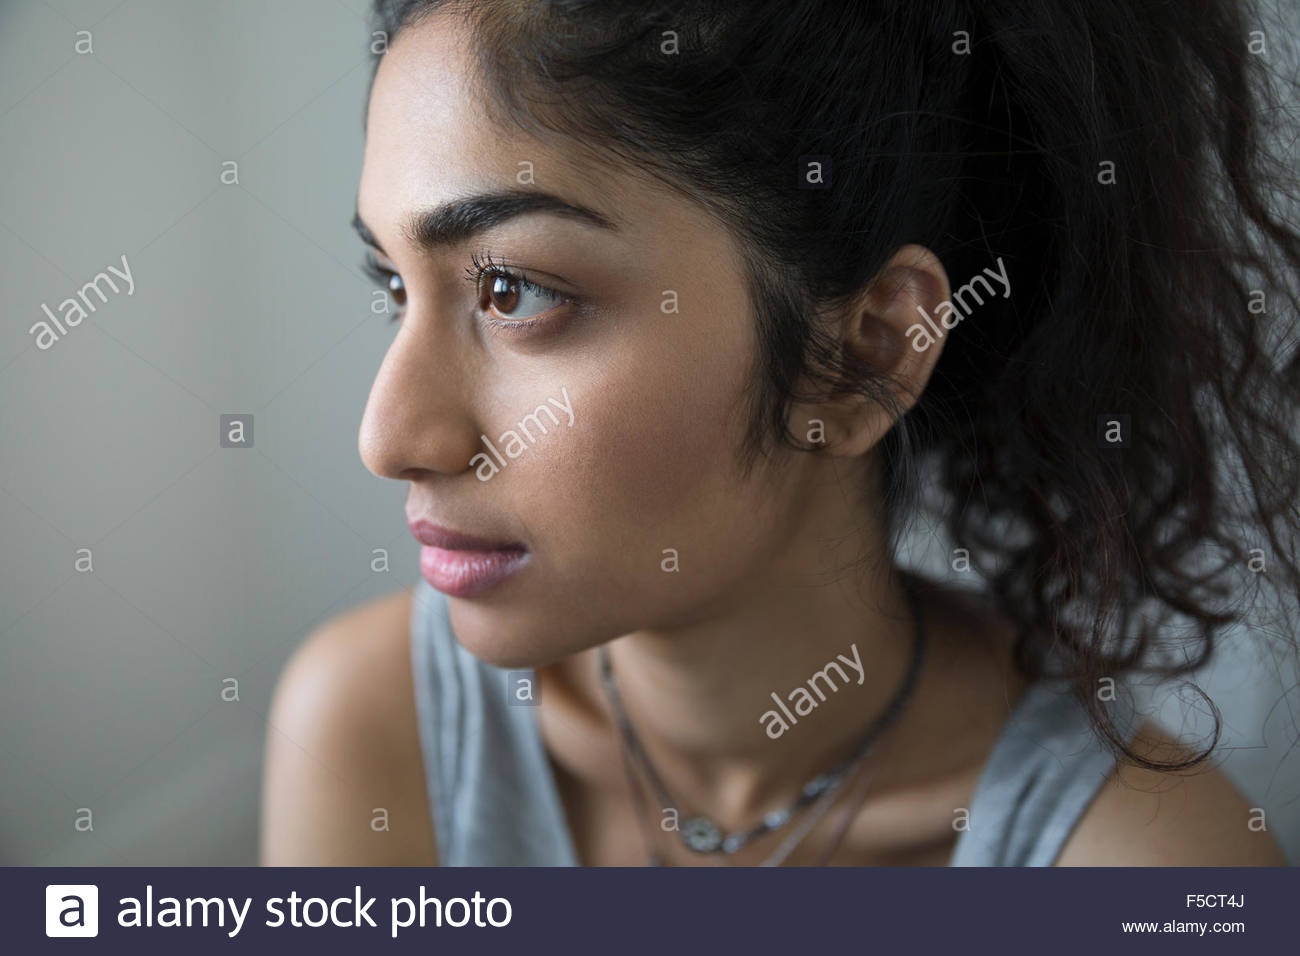 Close up portrait pensive young woman looking away - Stock Image